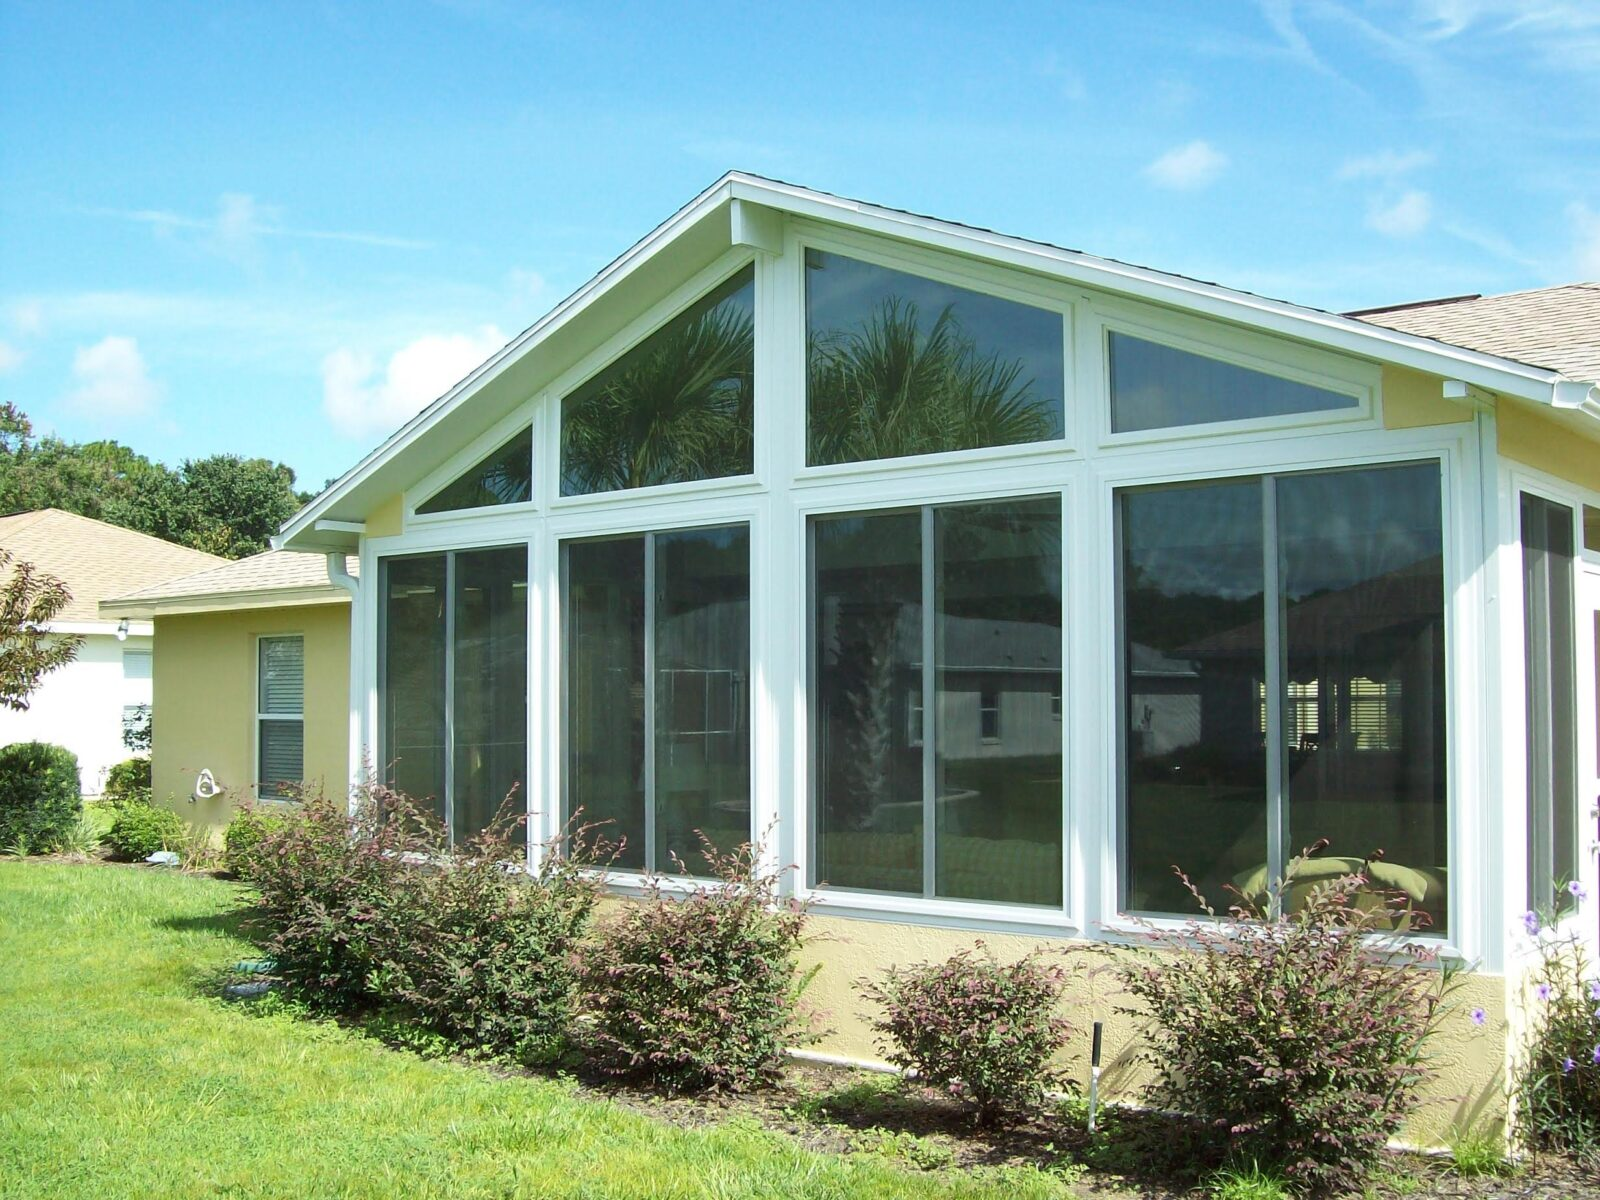 The Villages sunroom window wall with tall windows